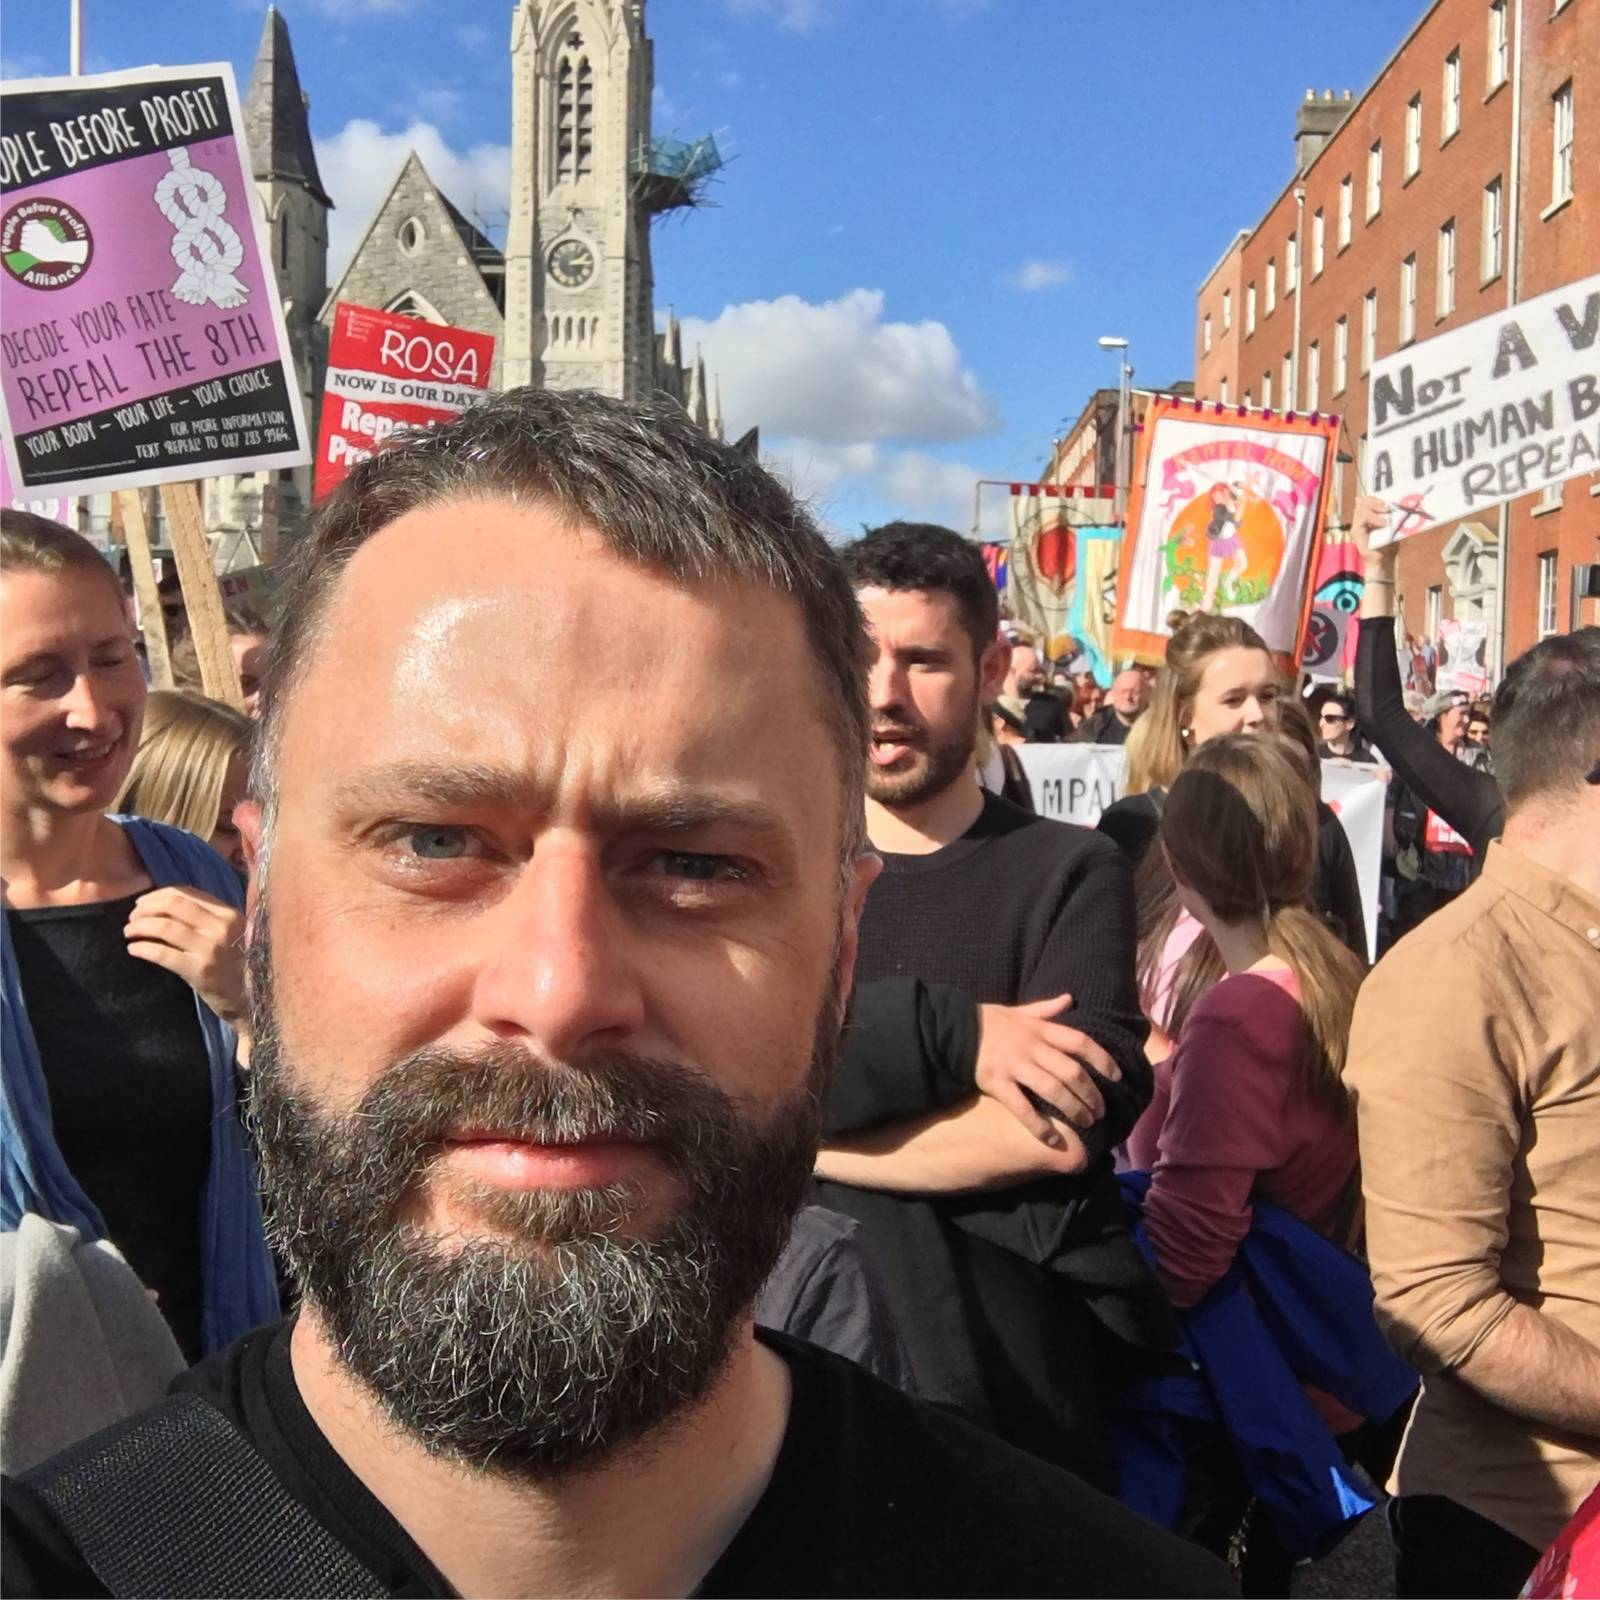 Myself at the march